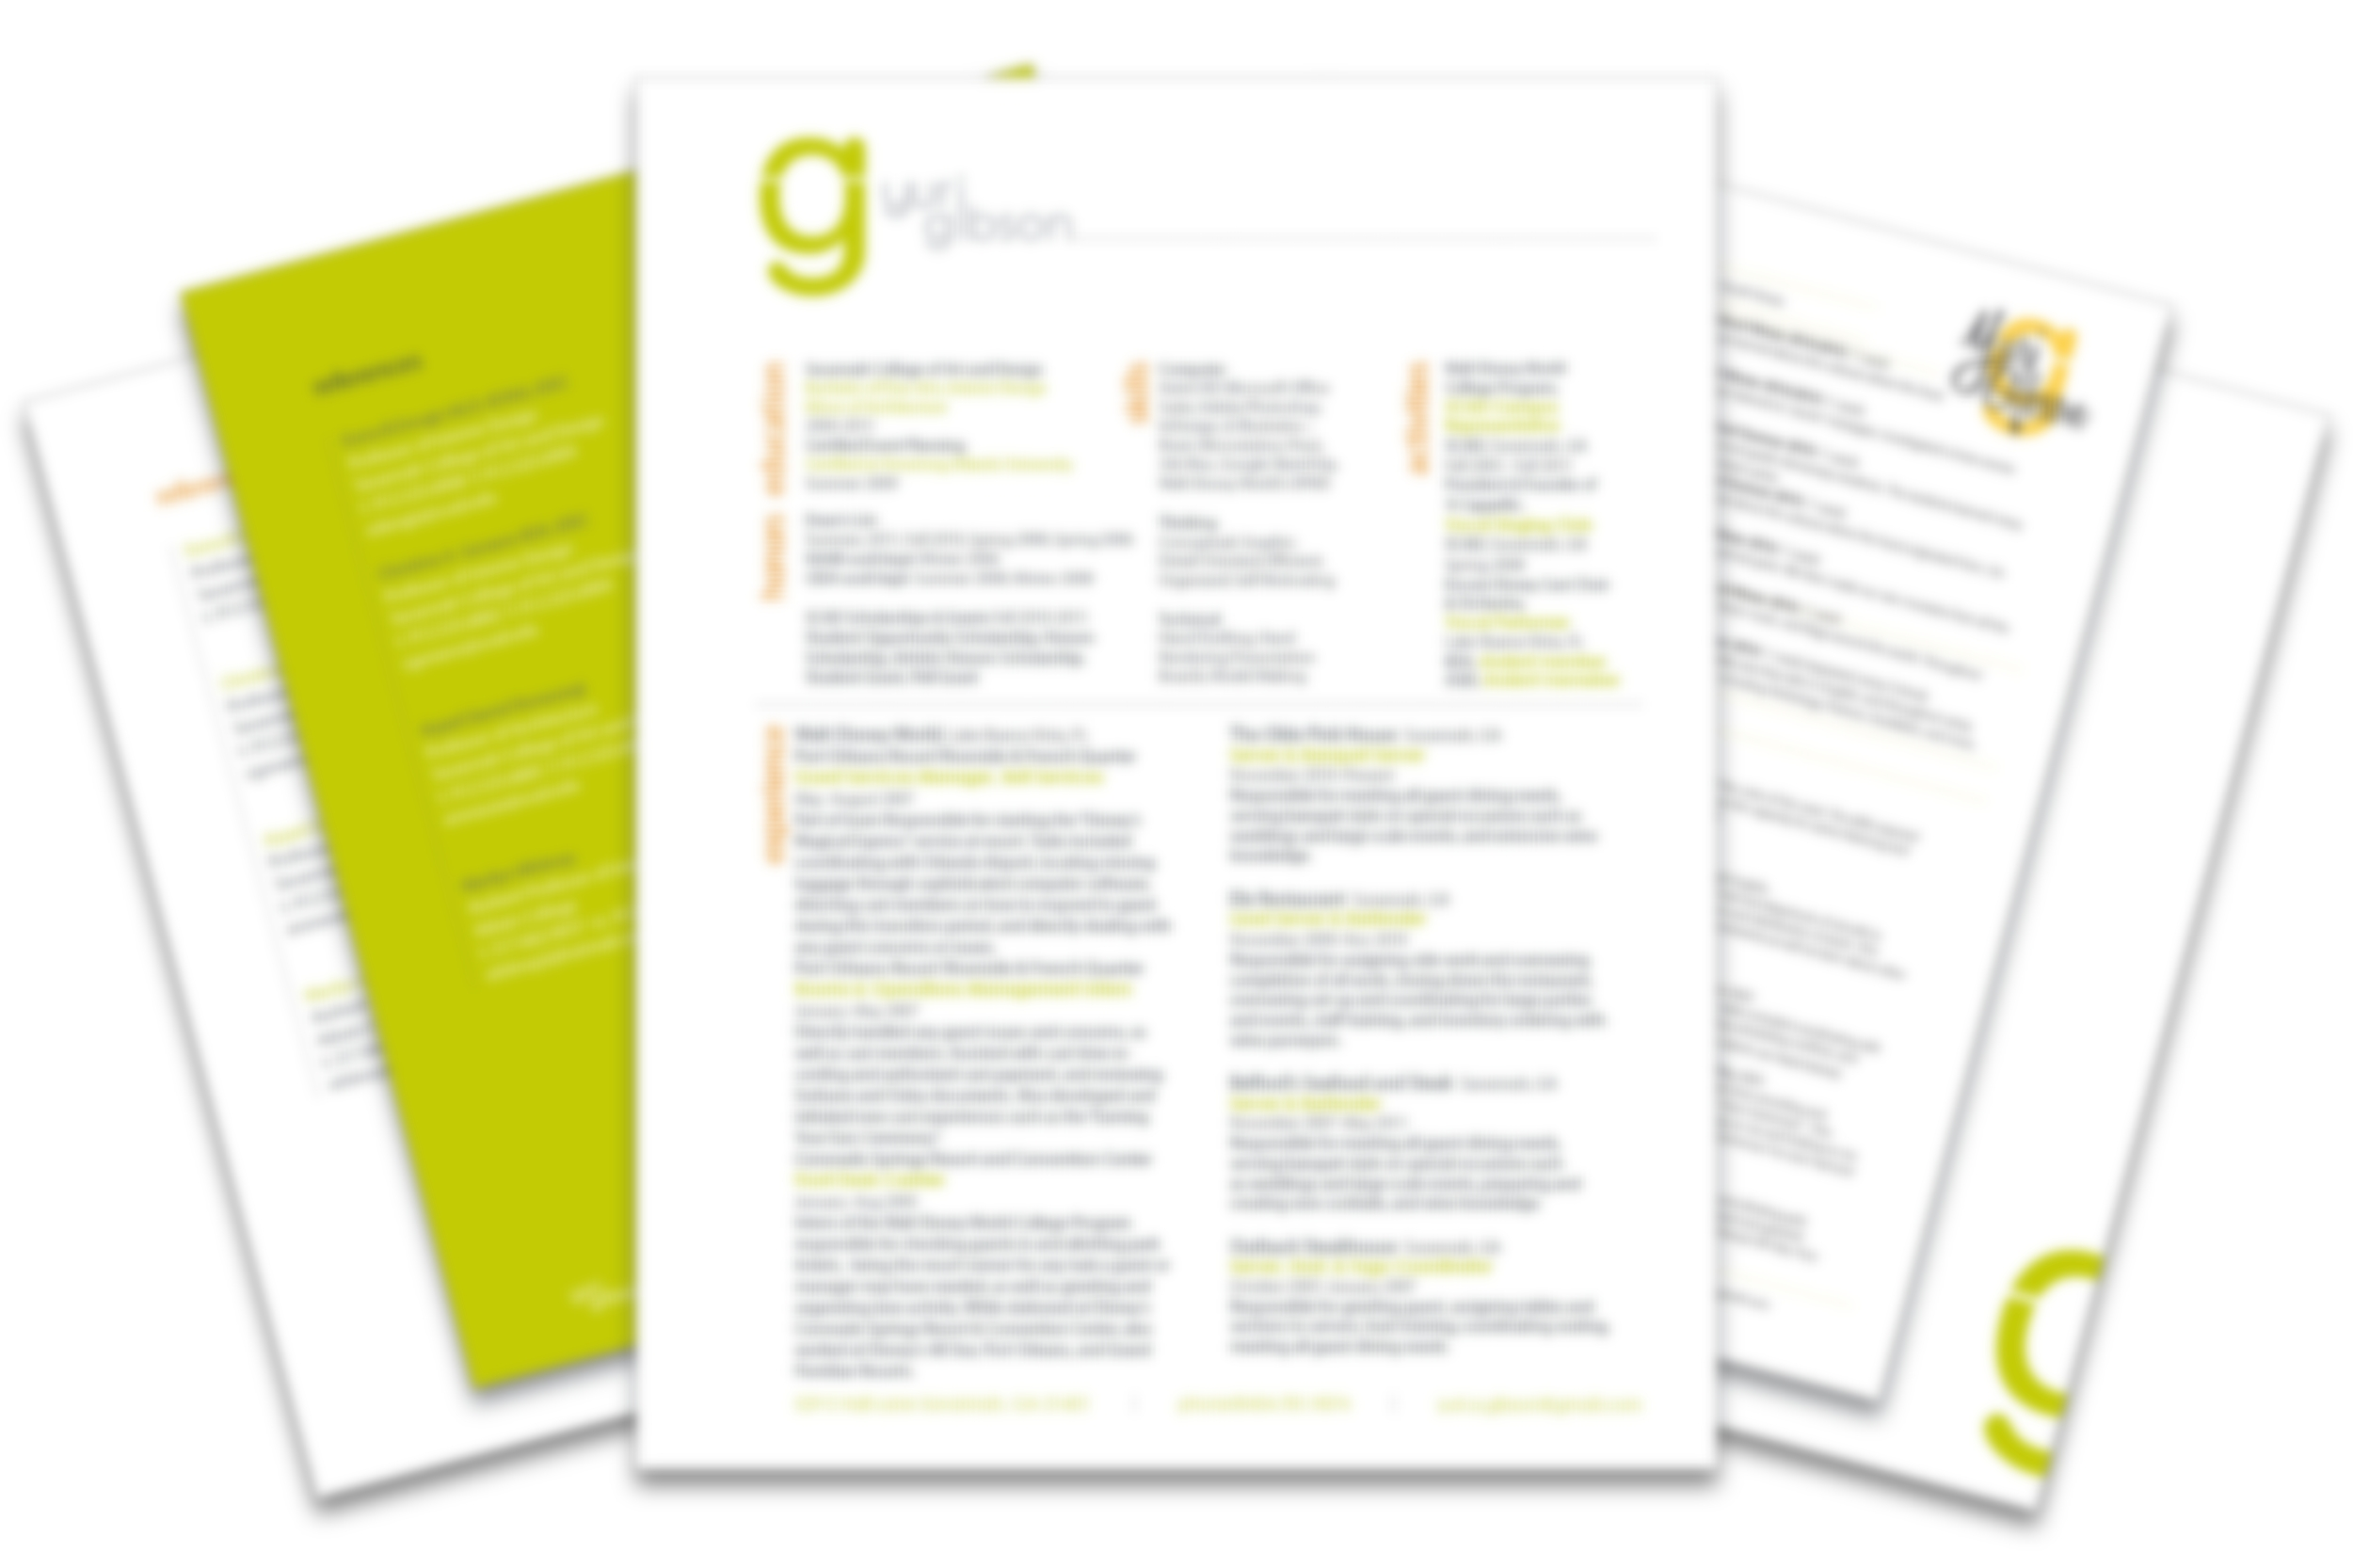 These are images of some of my resumes, references letters, and cover letters I've created using InDesign   (image is purposely blurred to not release any sensitive info, but I'm sure you get the idea: )